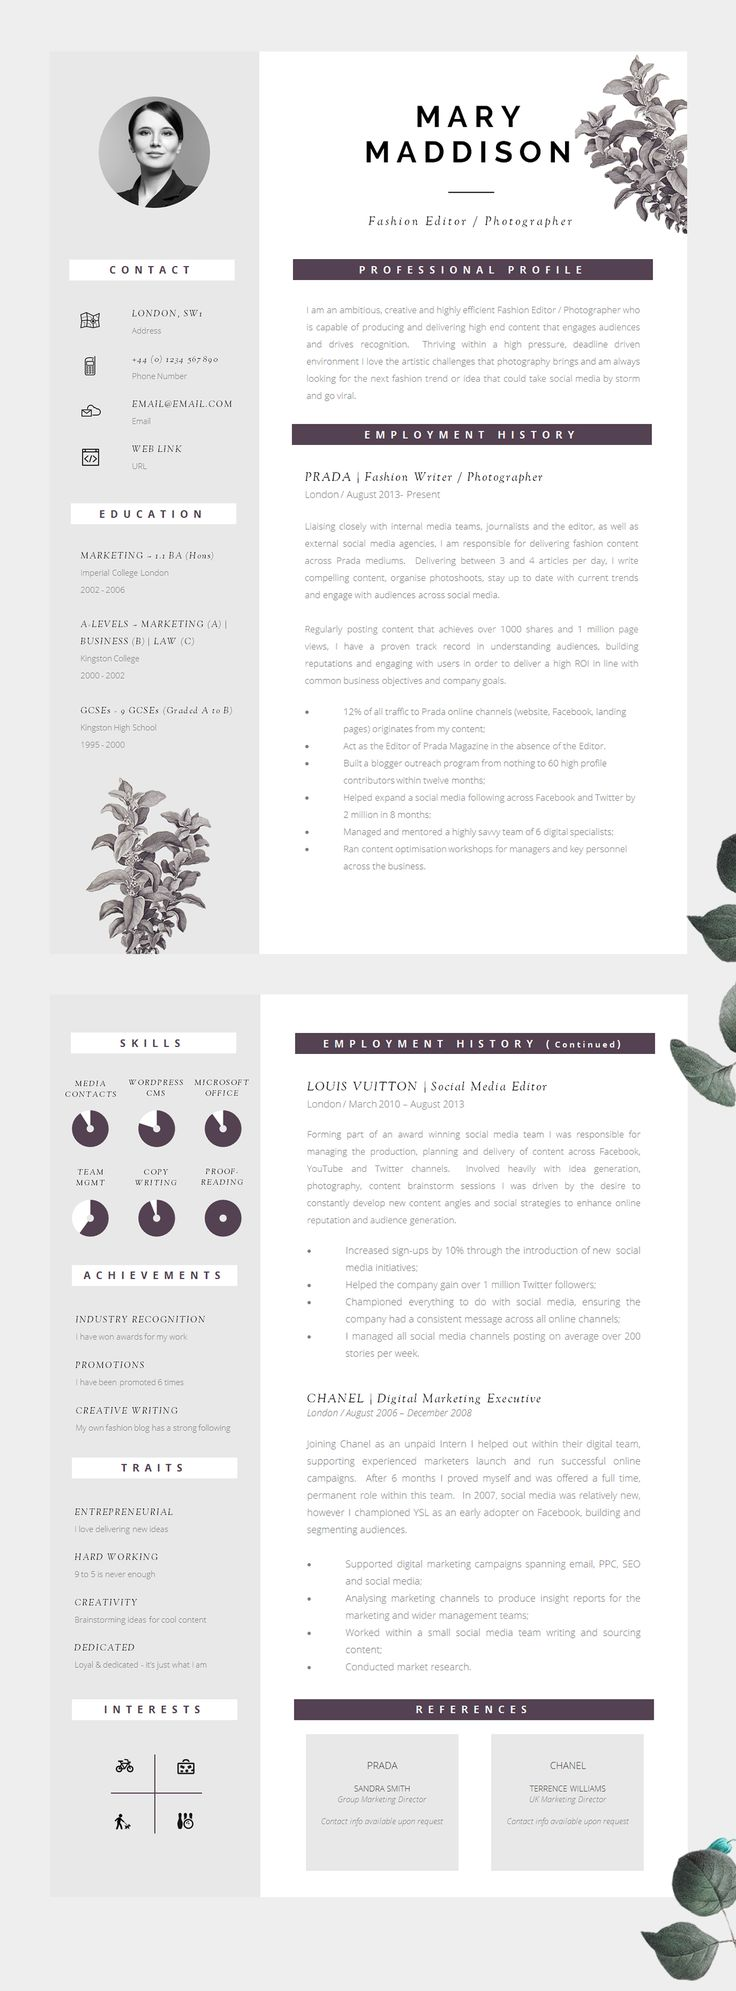 Well Designed CV, Modern Yet Professional   Information Is Clear To Read  And Well Structured  Professional Graphic Design Resume